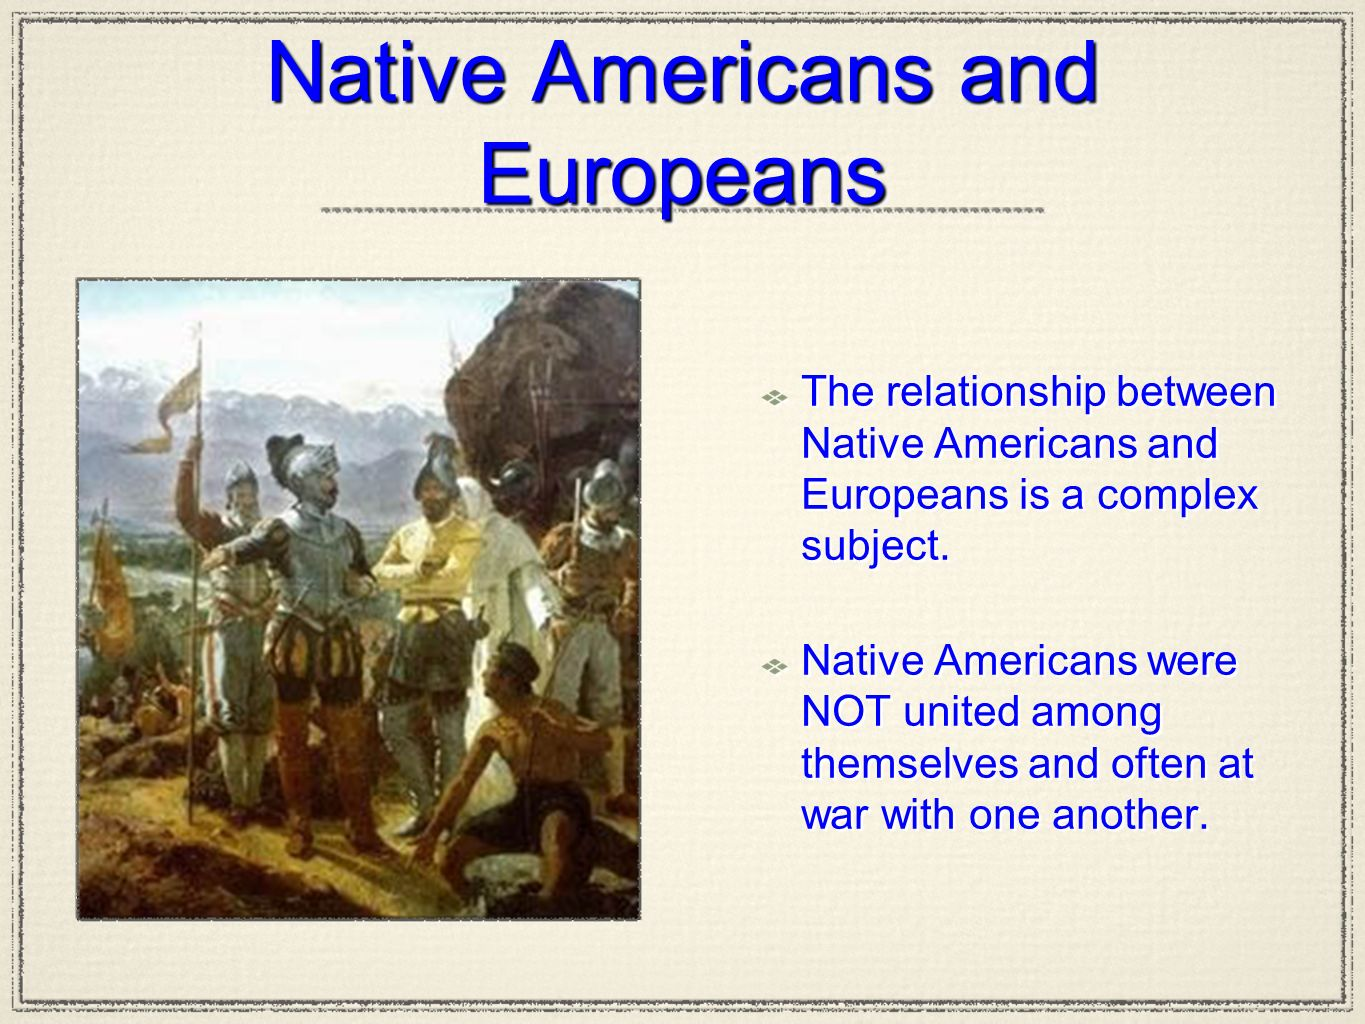 the relations between native americans and The date of initial contact between native americans and europeans remains unknown despite a lack of evidence, some believe that celtic peoples from europe may have arrived in north america around the time of christ or that irish monks under st brendan explored north america's east coast around ad 400.